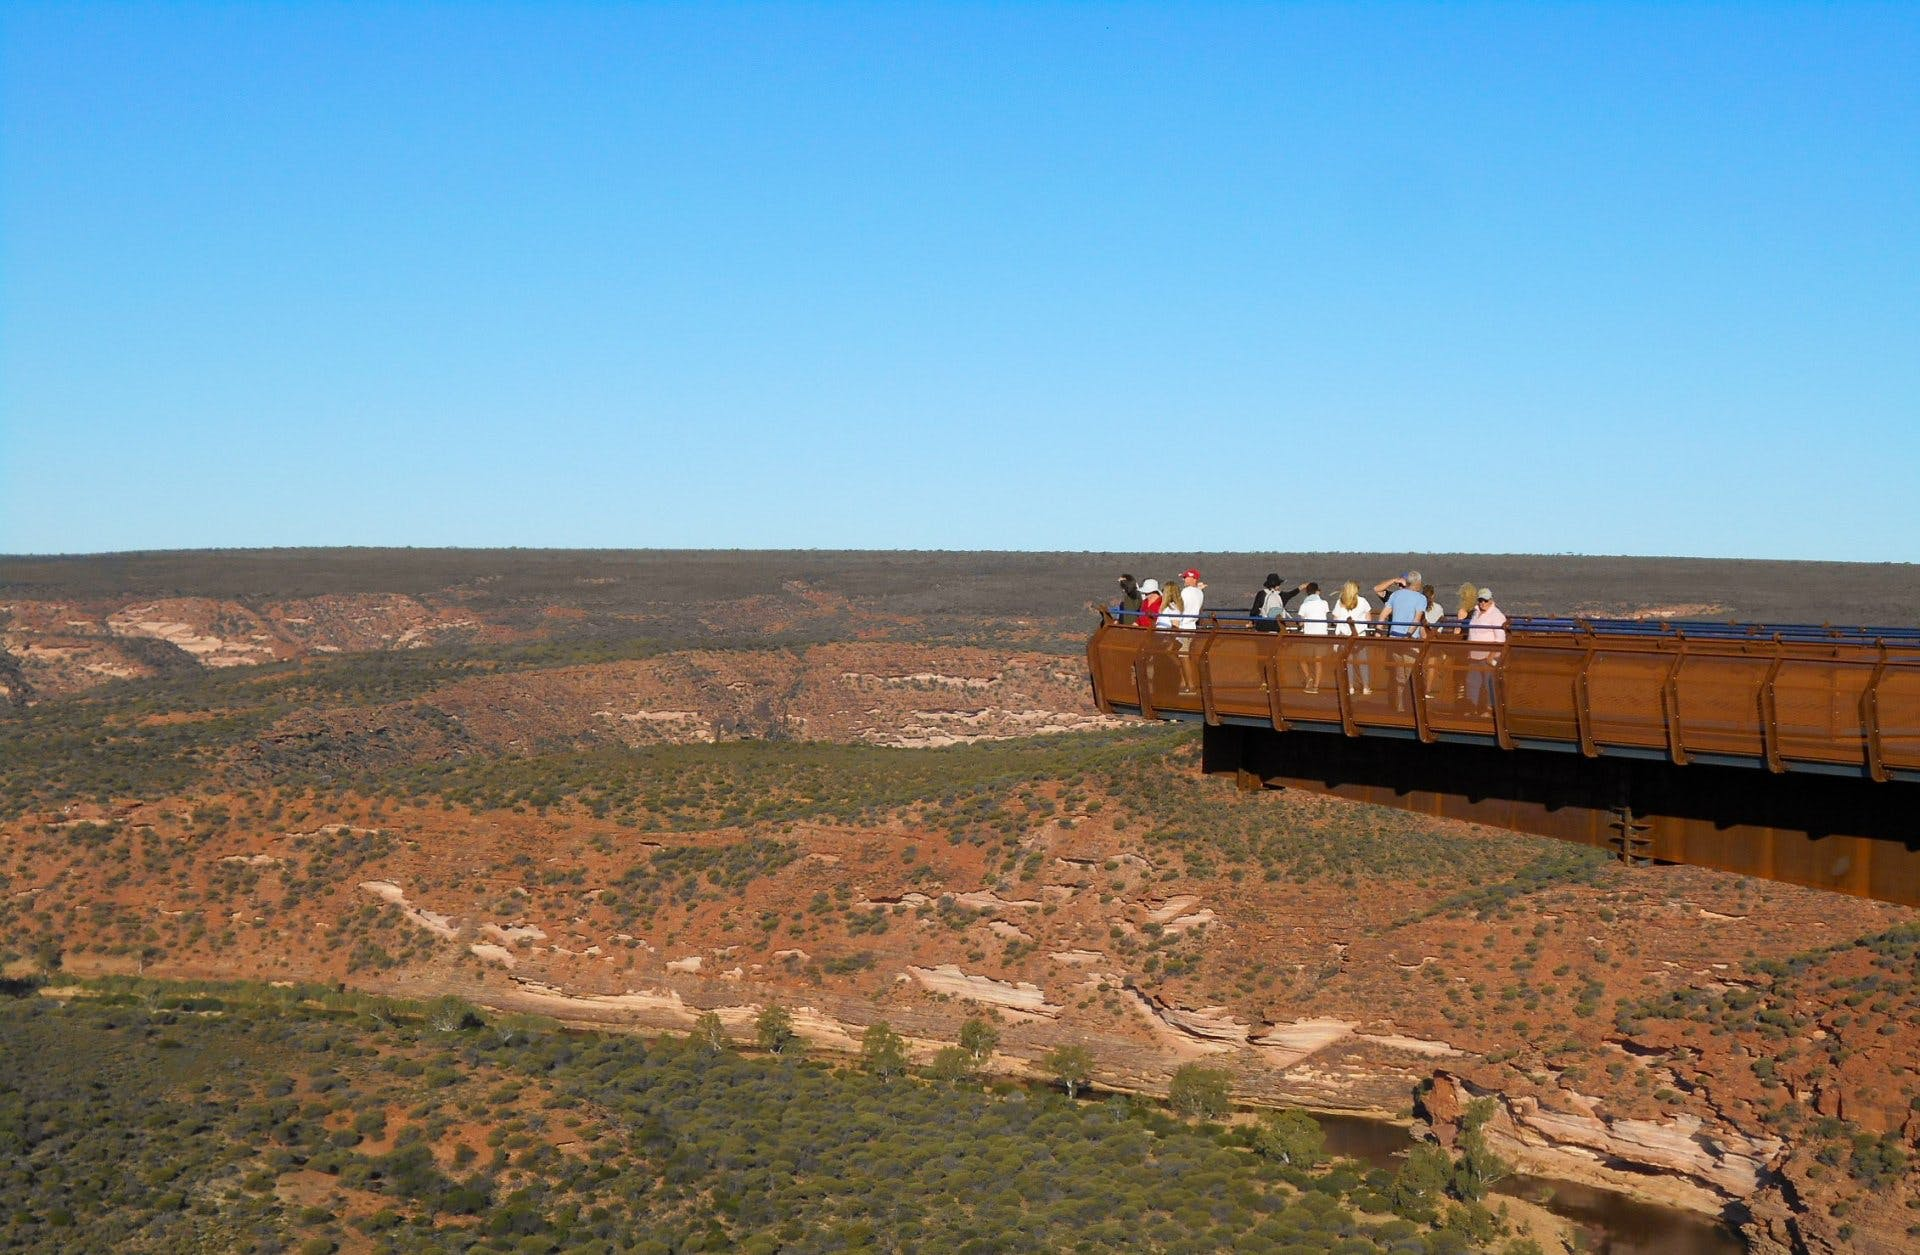 Kalbarri Skywalk (credit Department of Biodiversity, Conservation and Attractions)